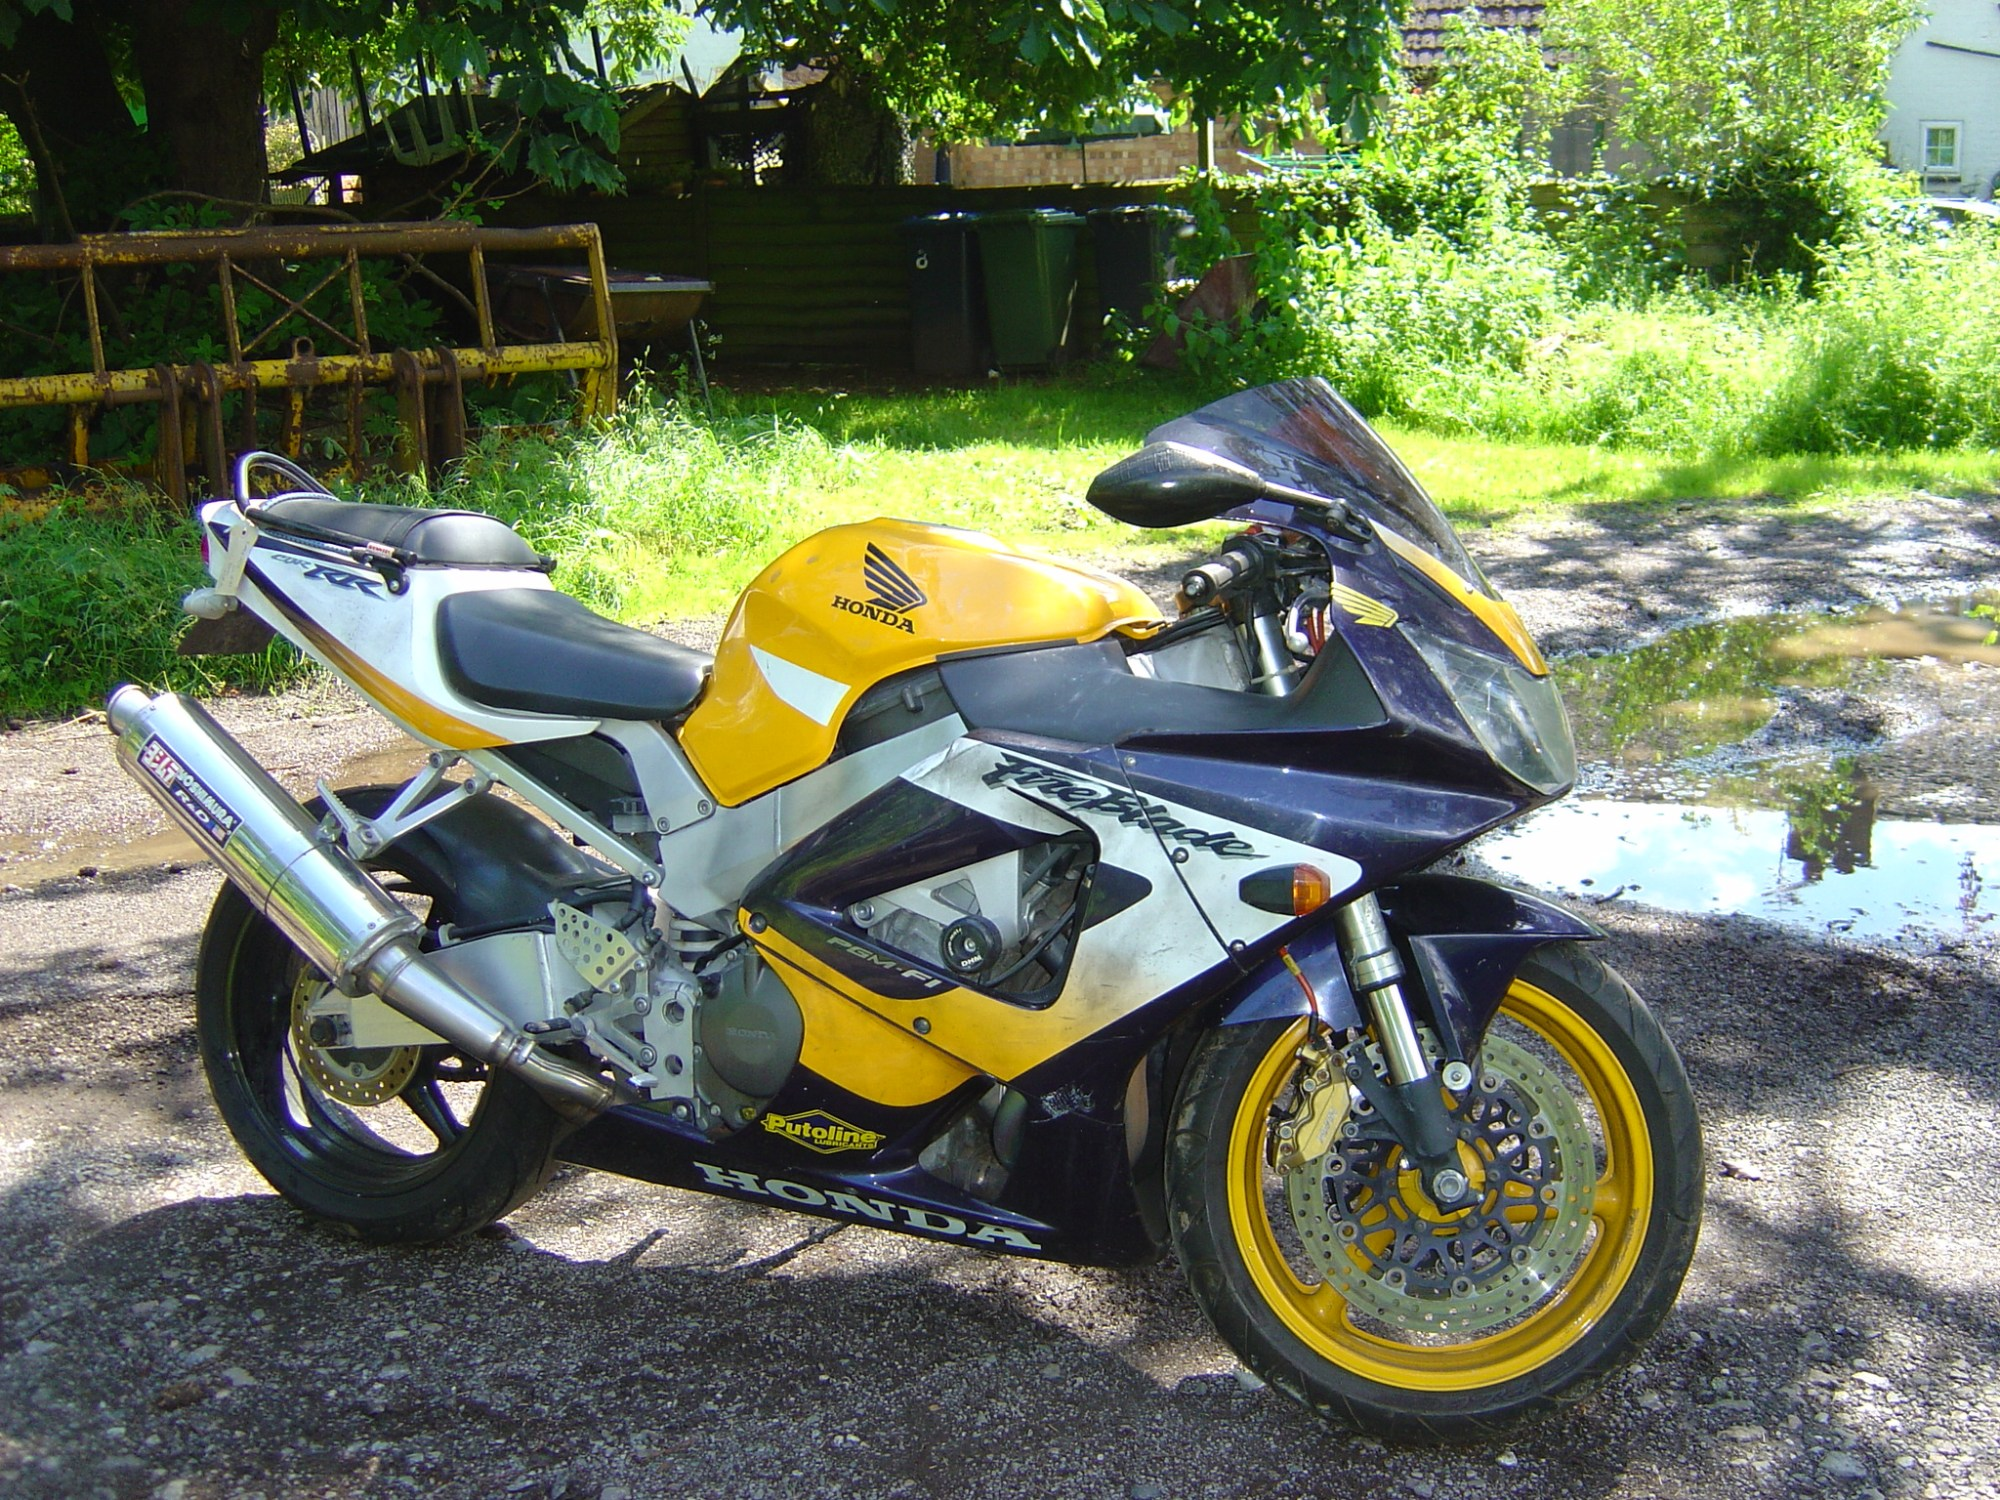 hight resolution of honda cbr900 929 fireblade year 2001 rhs motor cycle breaking for spare parts